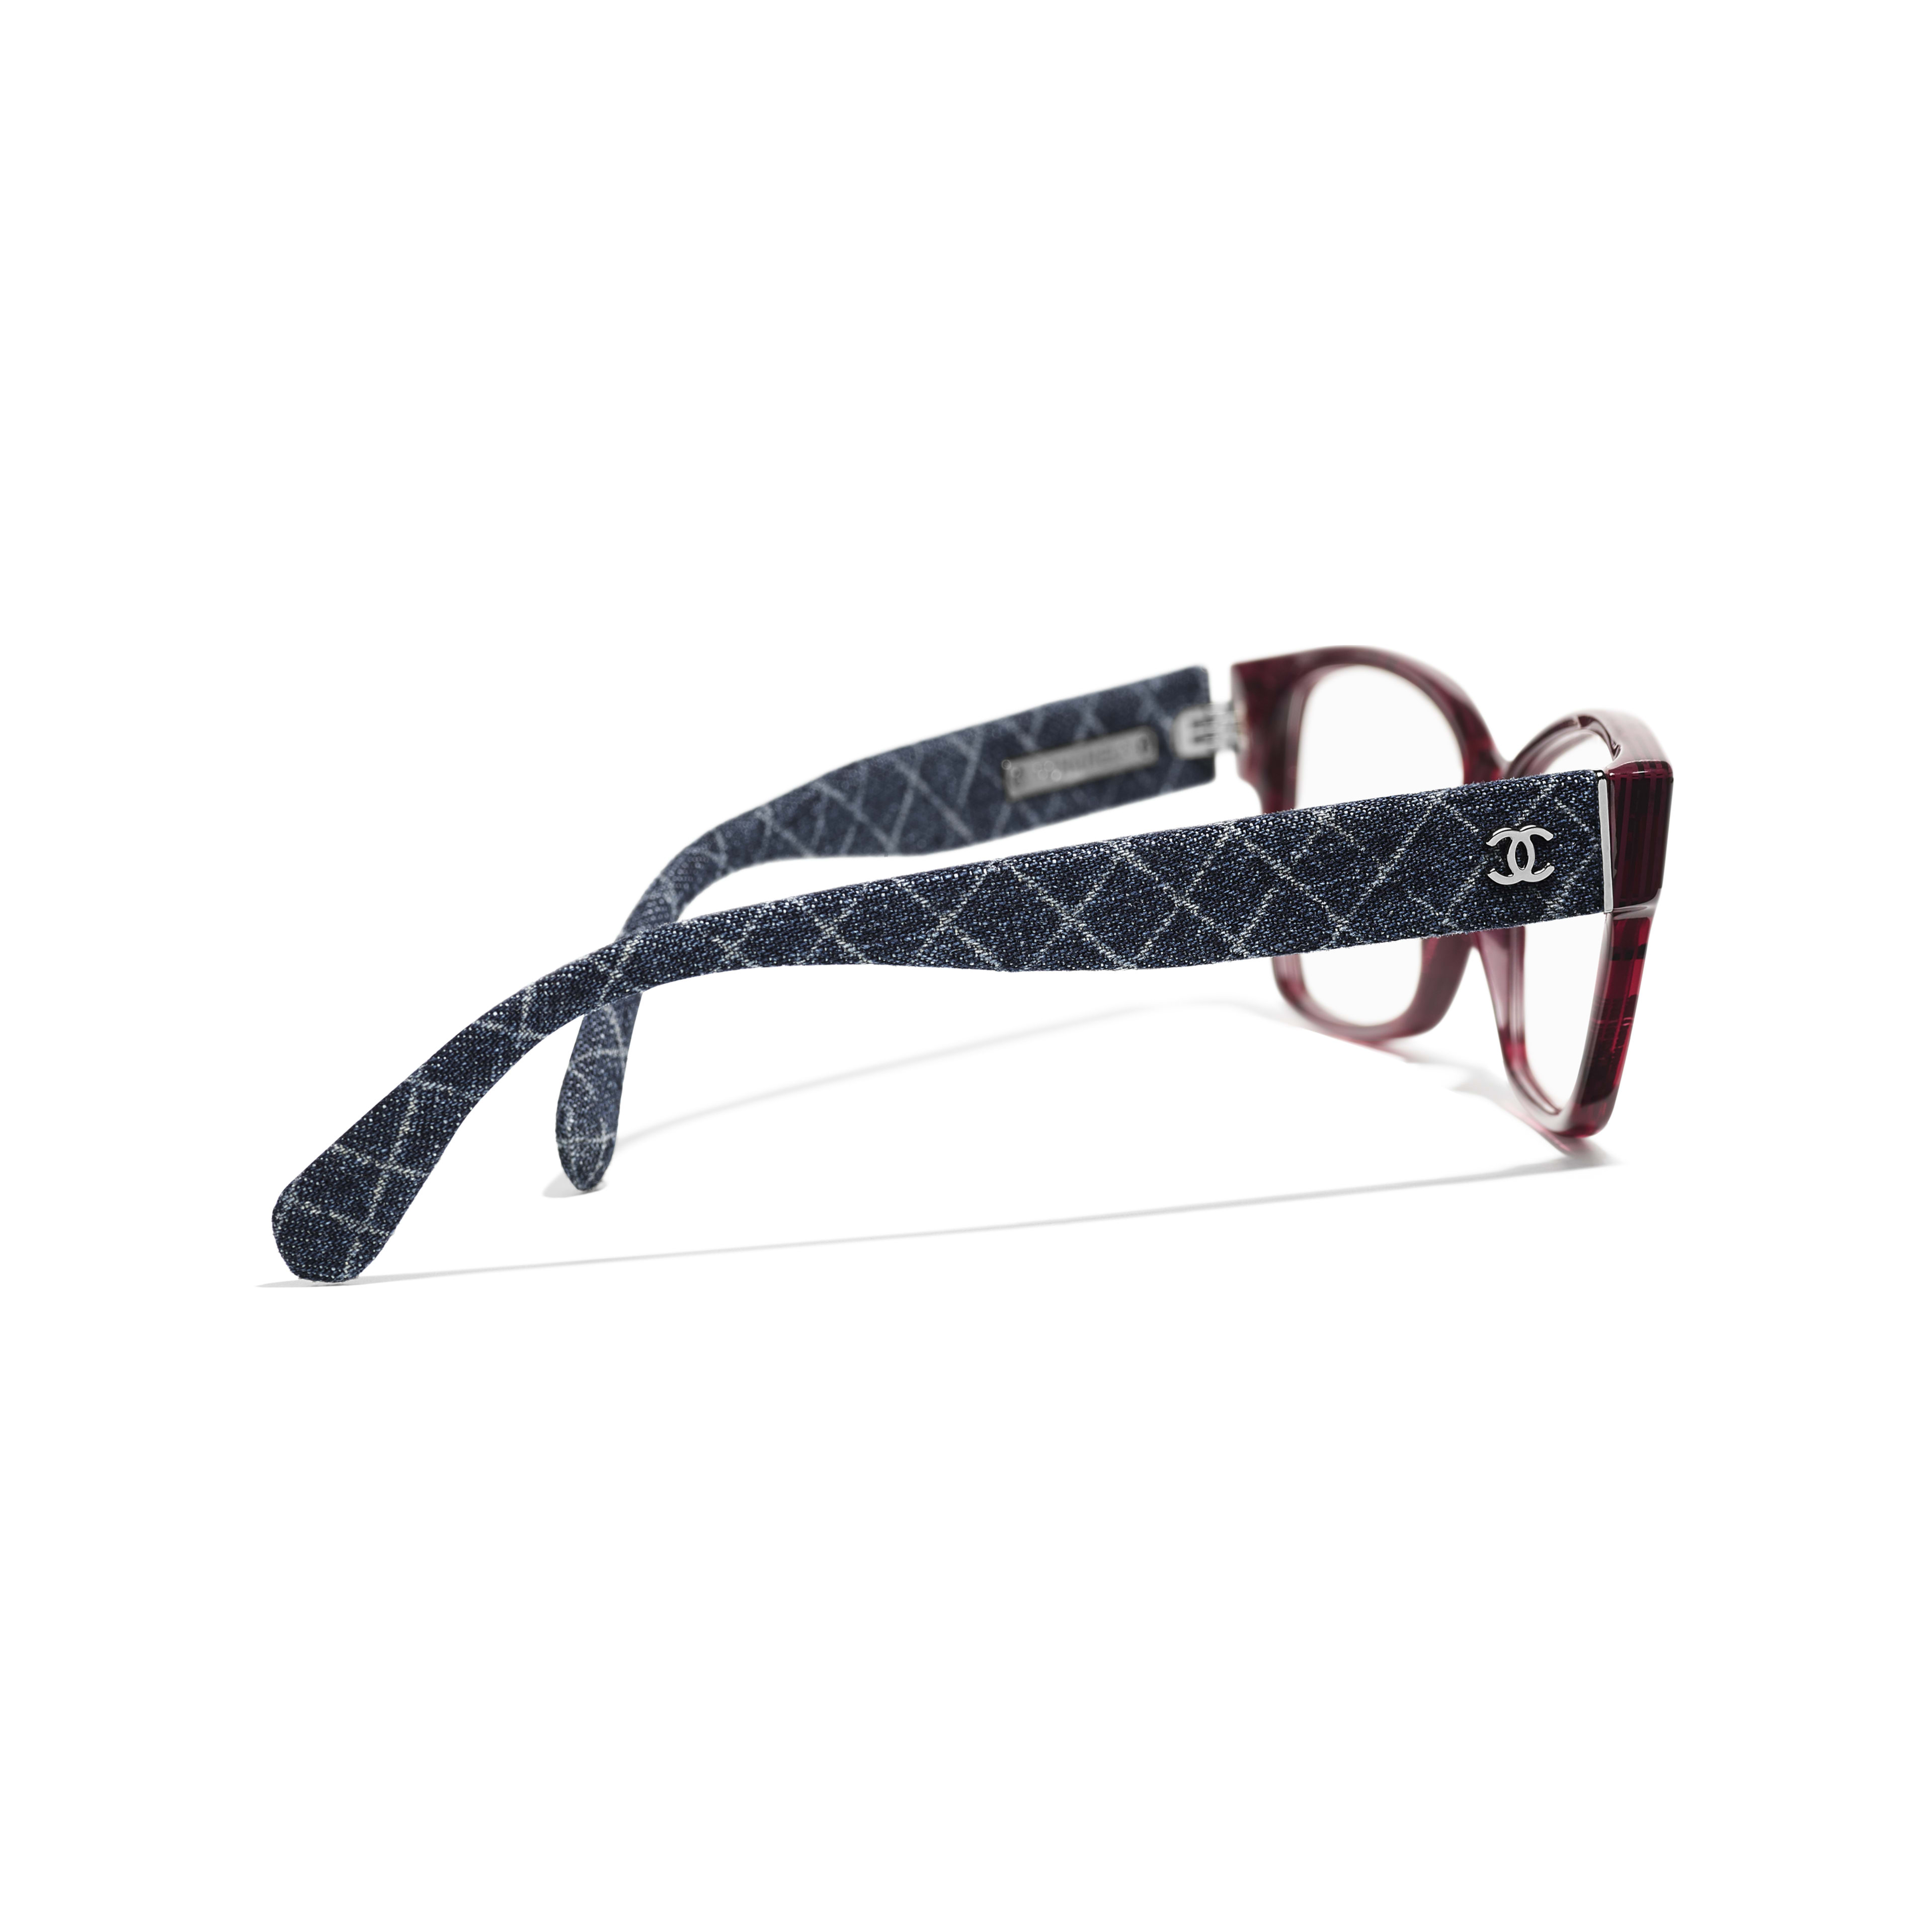 Rectangle Eyeglasses - Red & Dark Blue - Acetate & Denim - Extra view - see full sized version